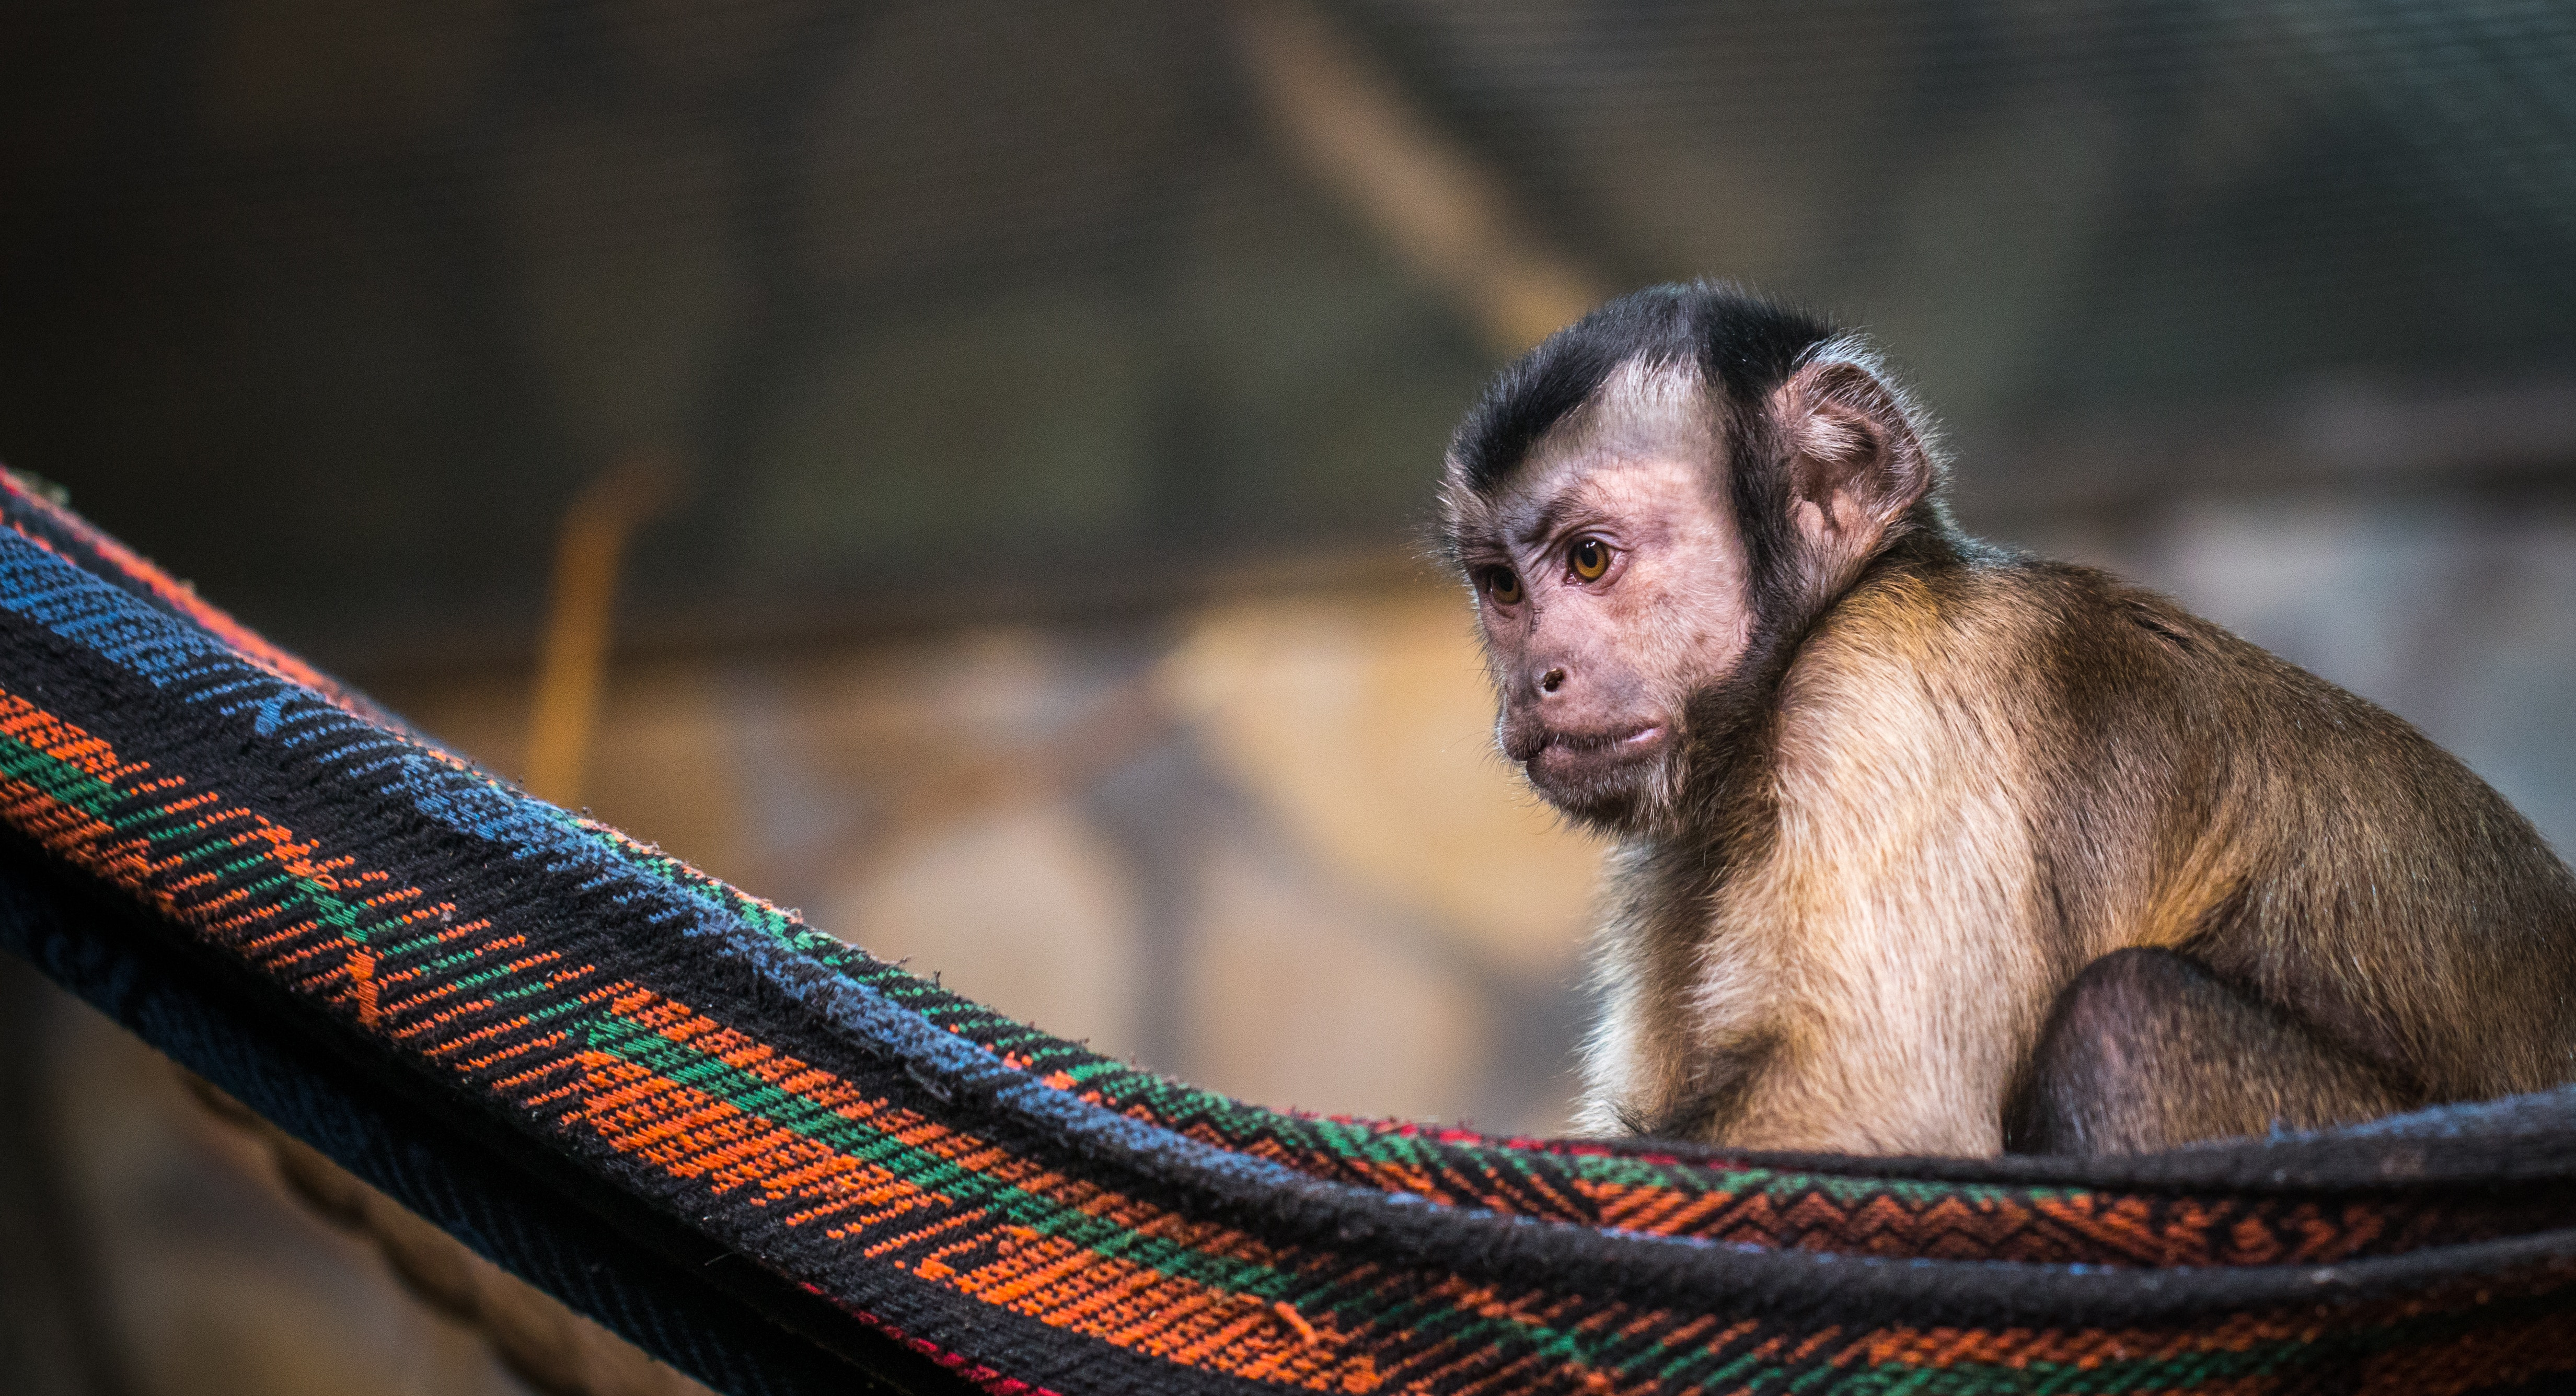 Brown monkey on red and black hammock photo